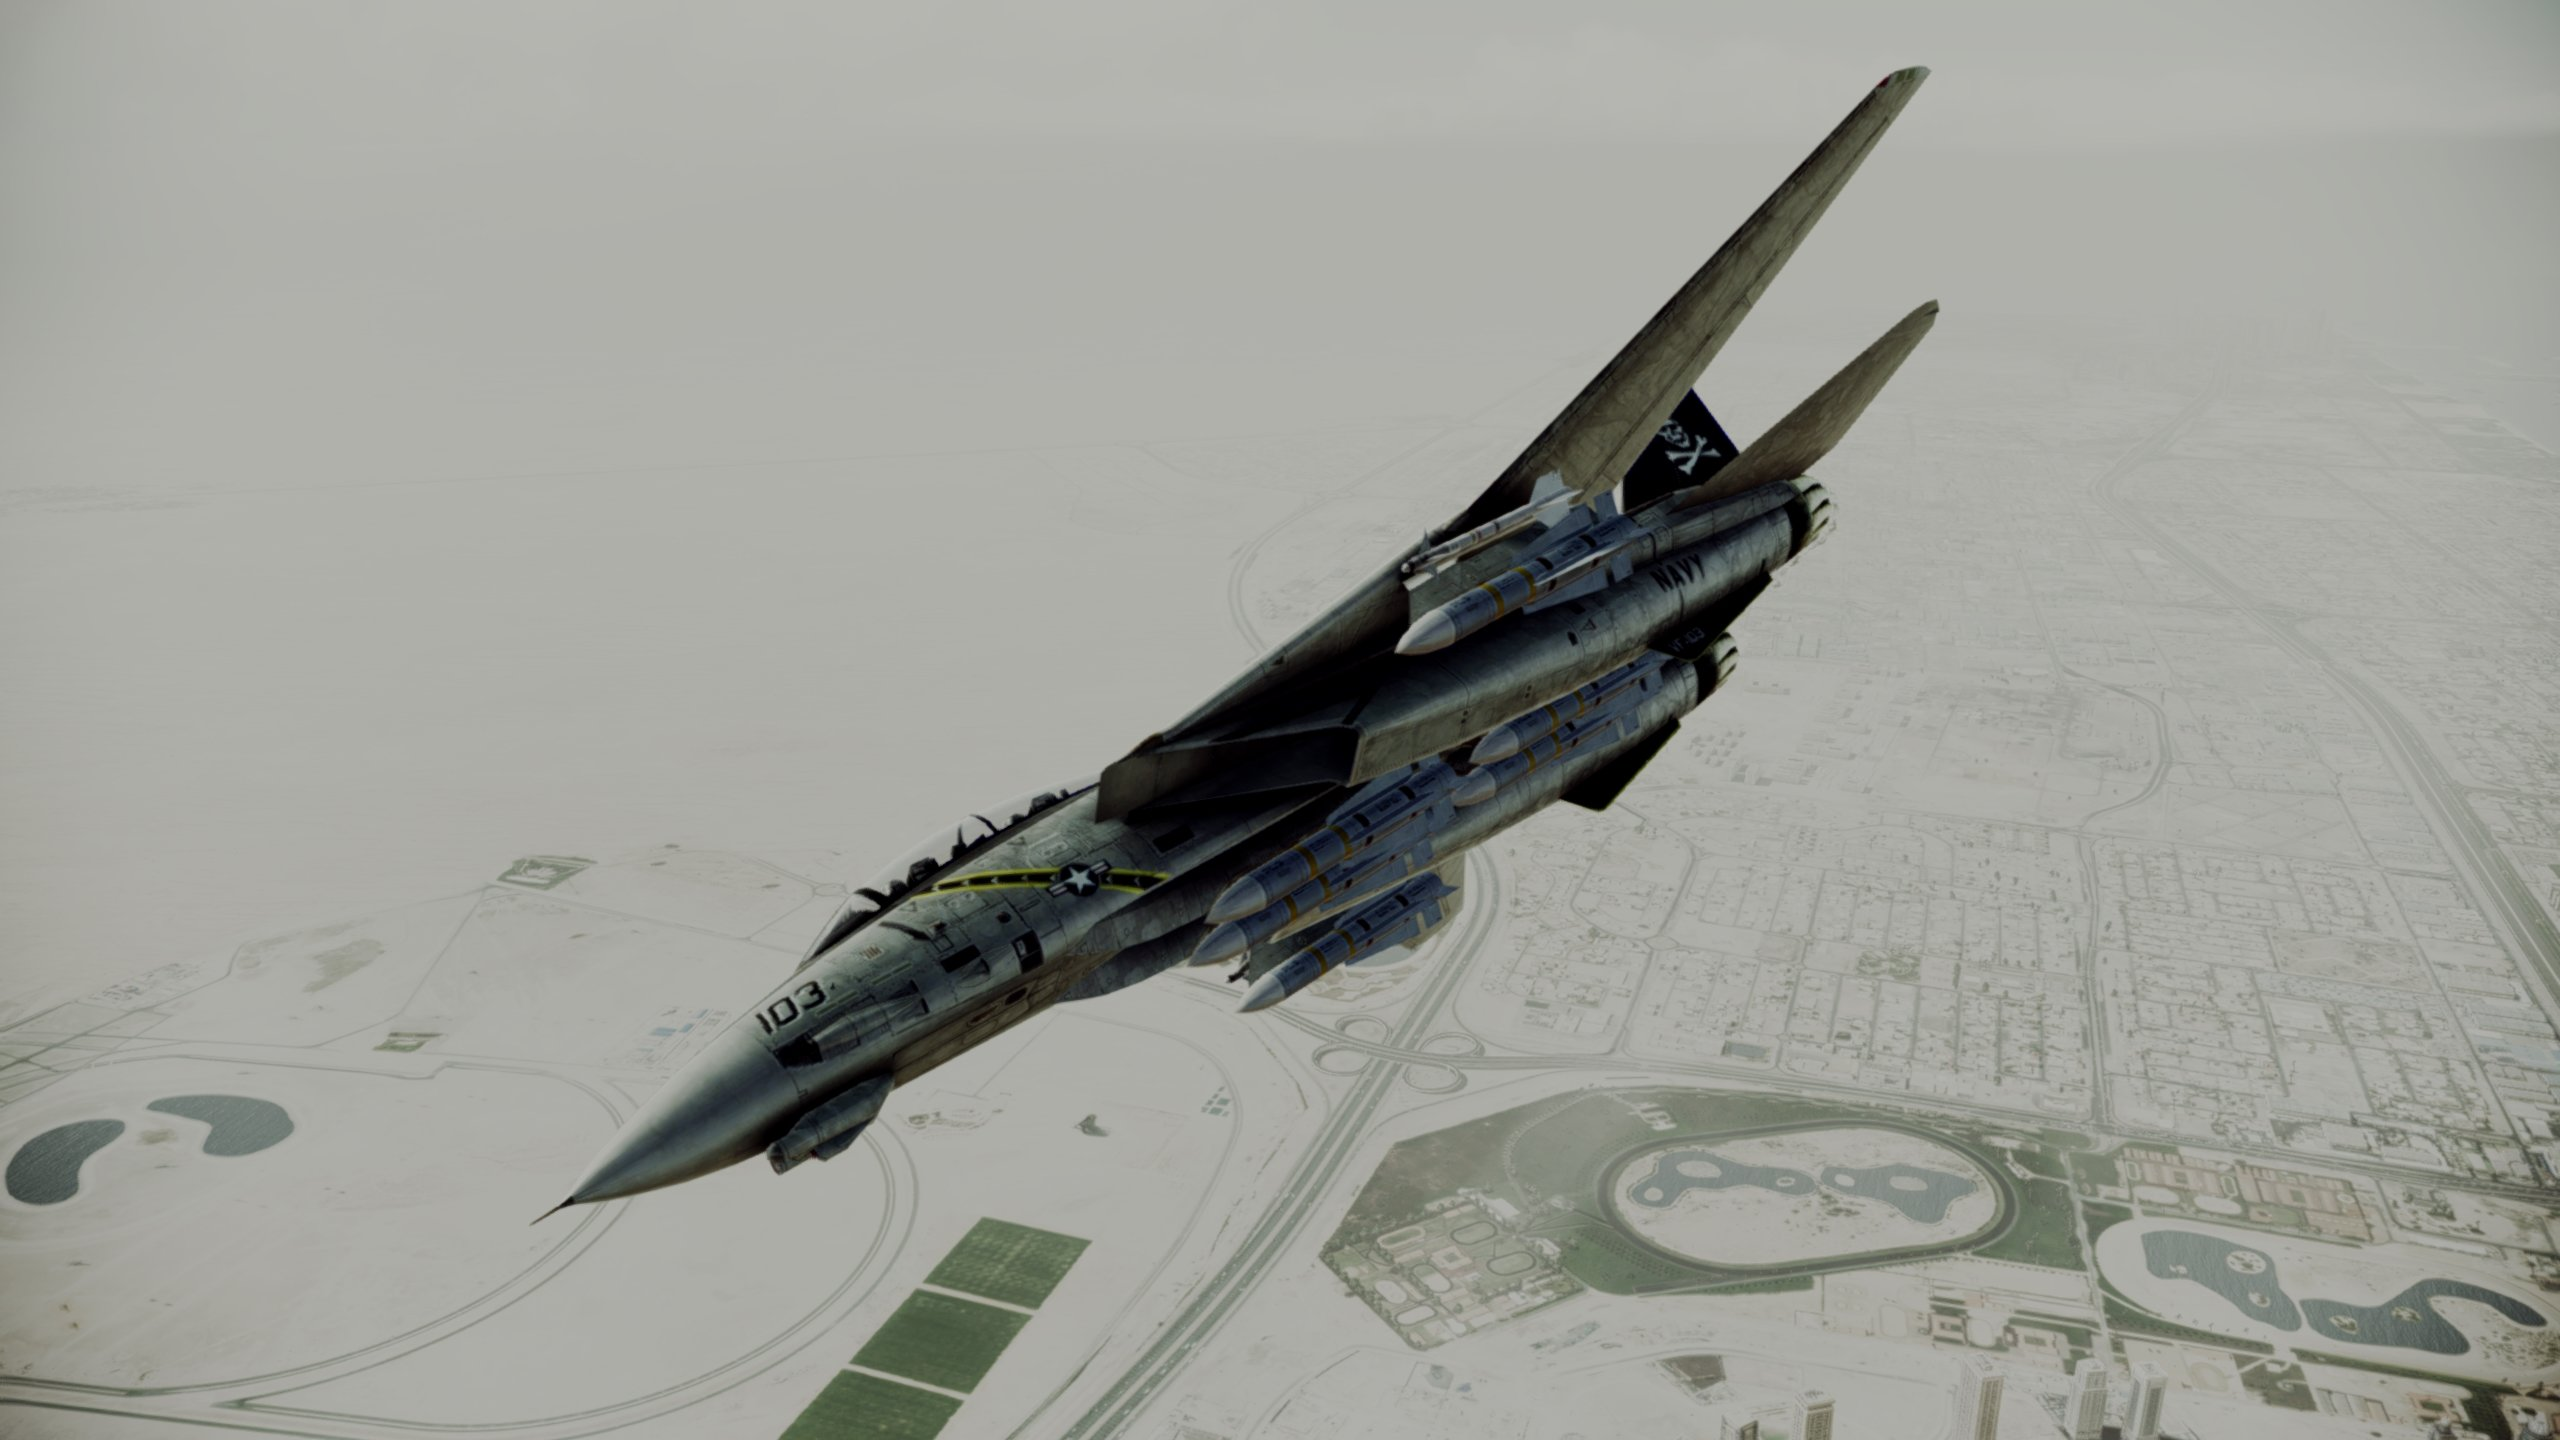 Awesome Ace Combat: Assault Horizon free wallpaper ID:25548 for hd 2560x1440 desktop